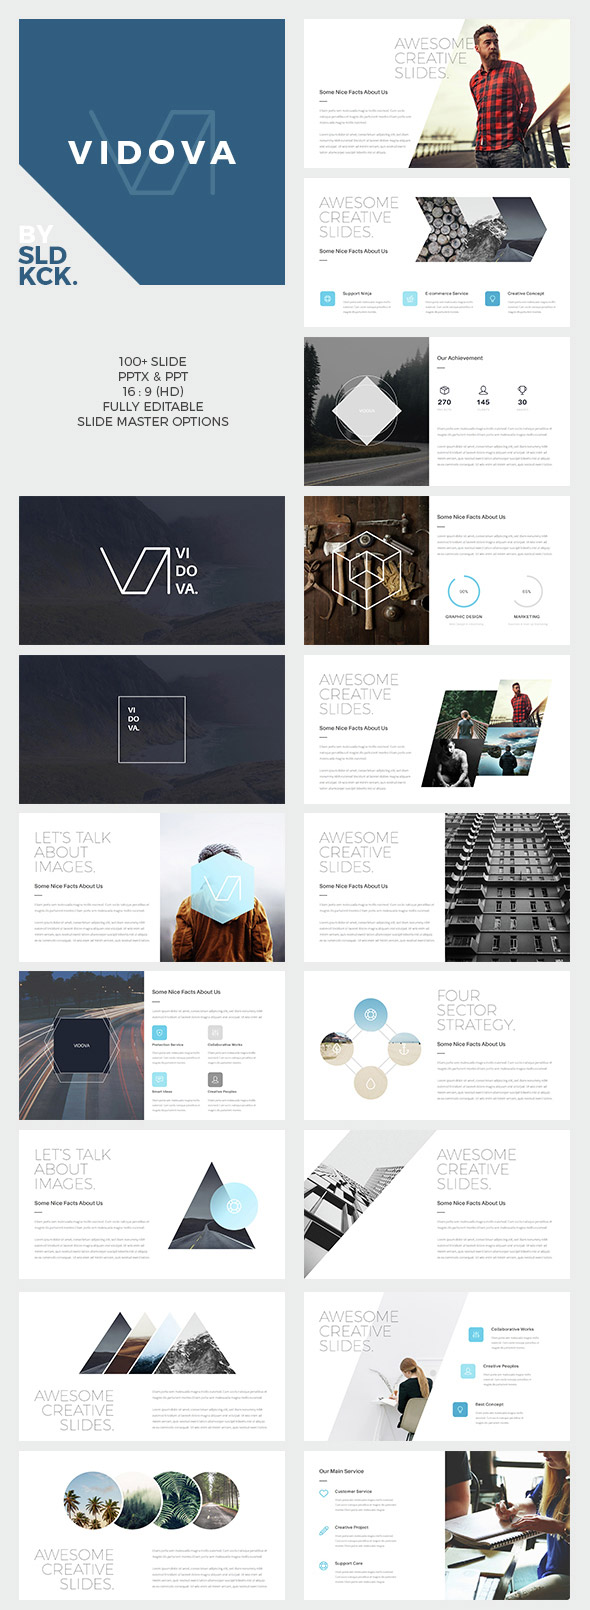 Vidova - Modern PPT Presentation Template Design